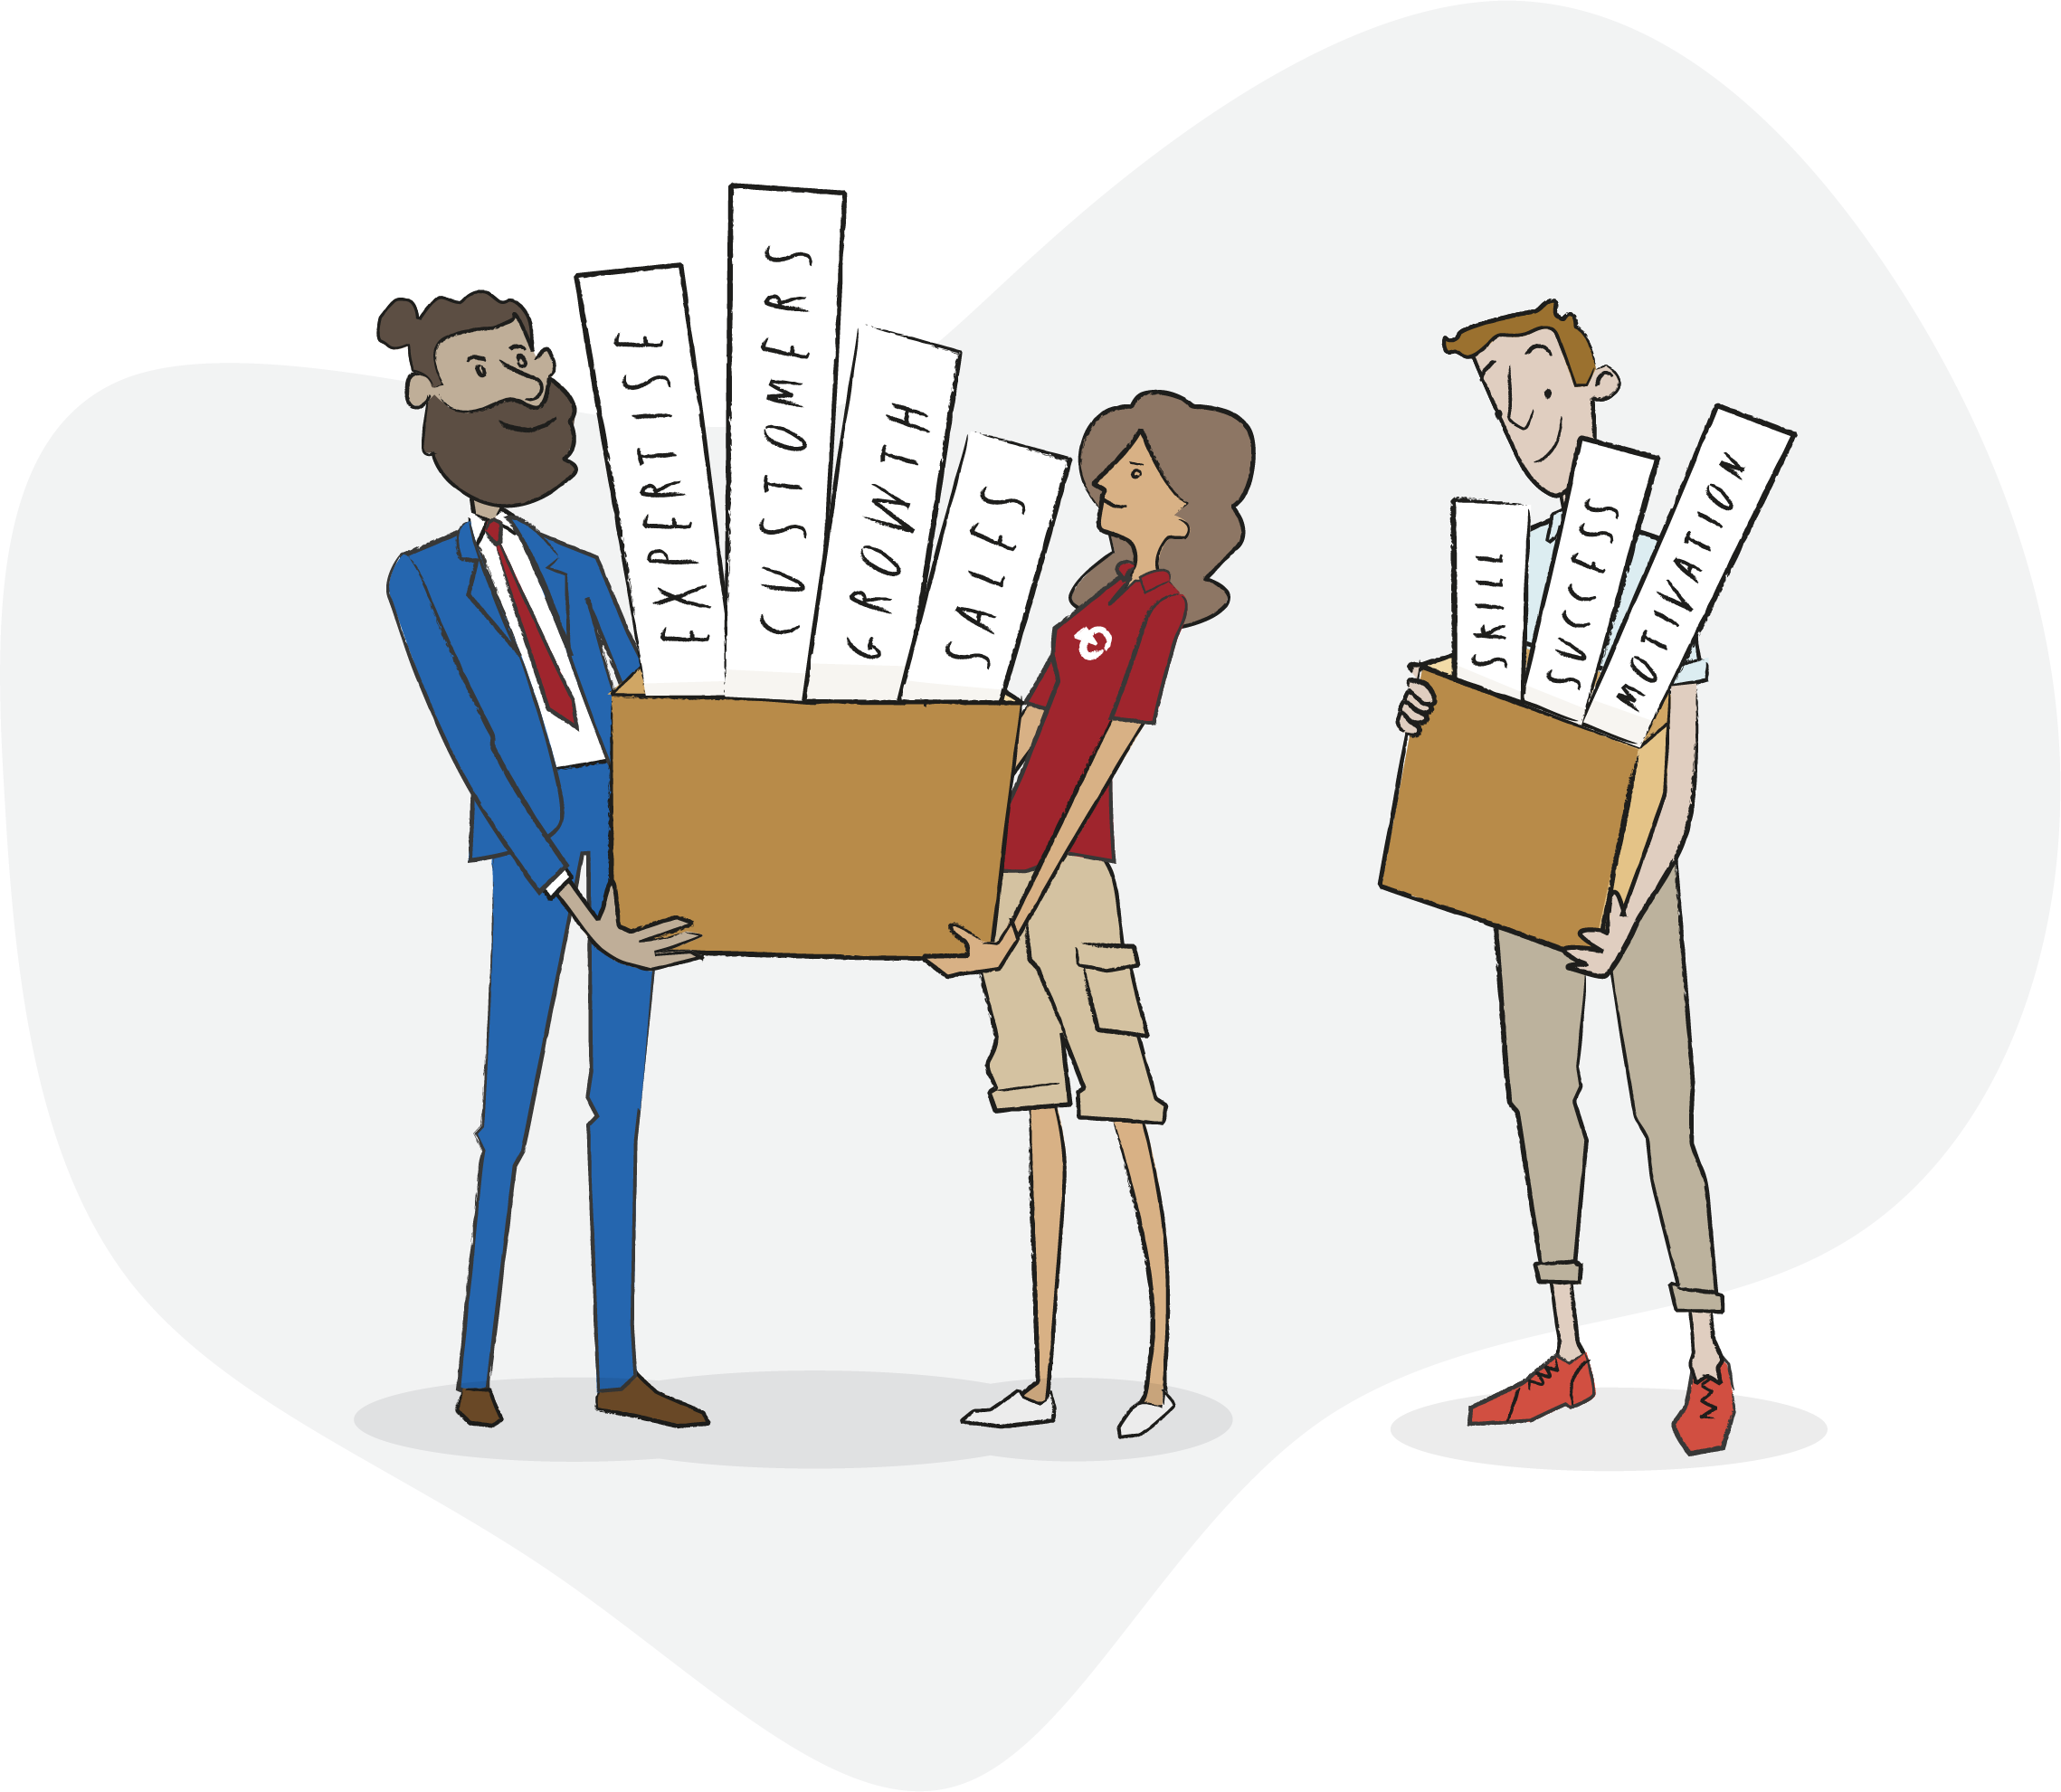 We are about: Expertise, three people carrying two boxes first box signs with Customers, Growth and Sales the second box signs Skills, Success and Motivation